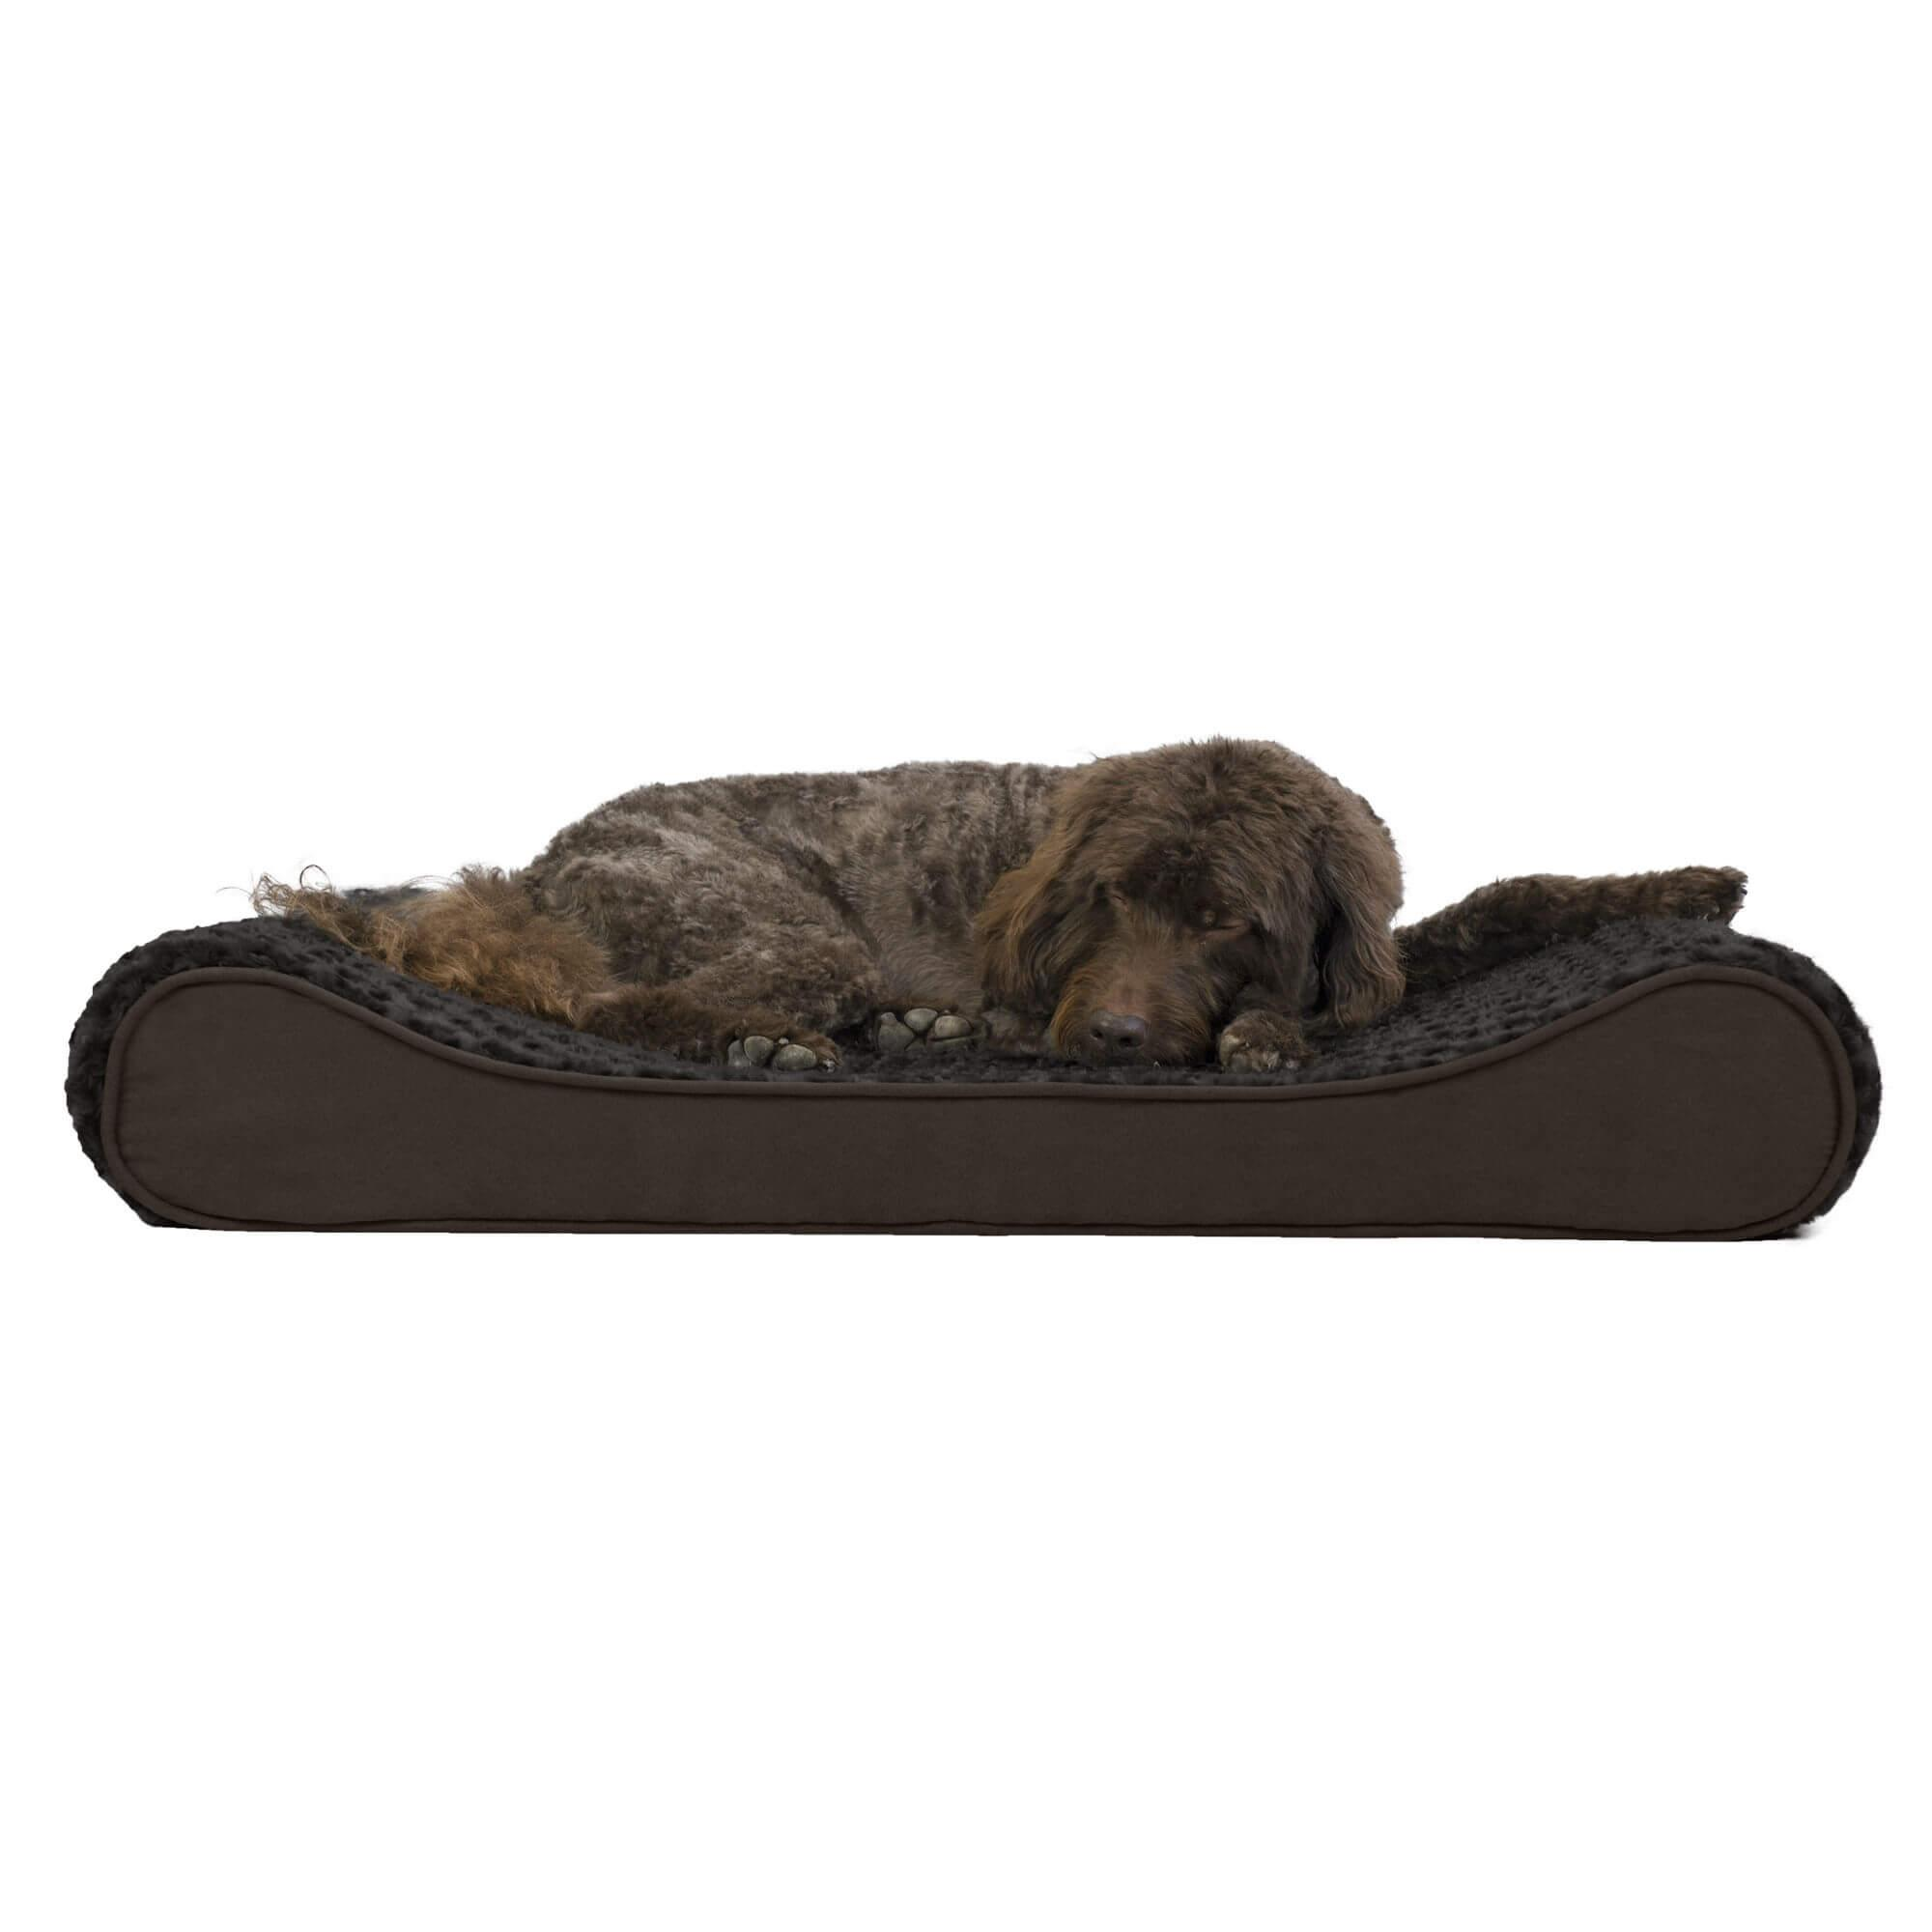 Ultra Plush Luxe Lounger Orthopedic Dog Bed - Chocolate